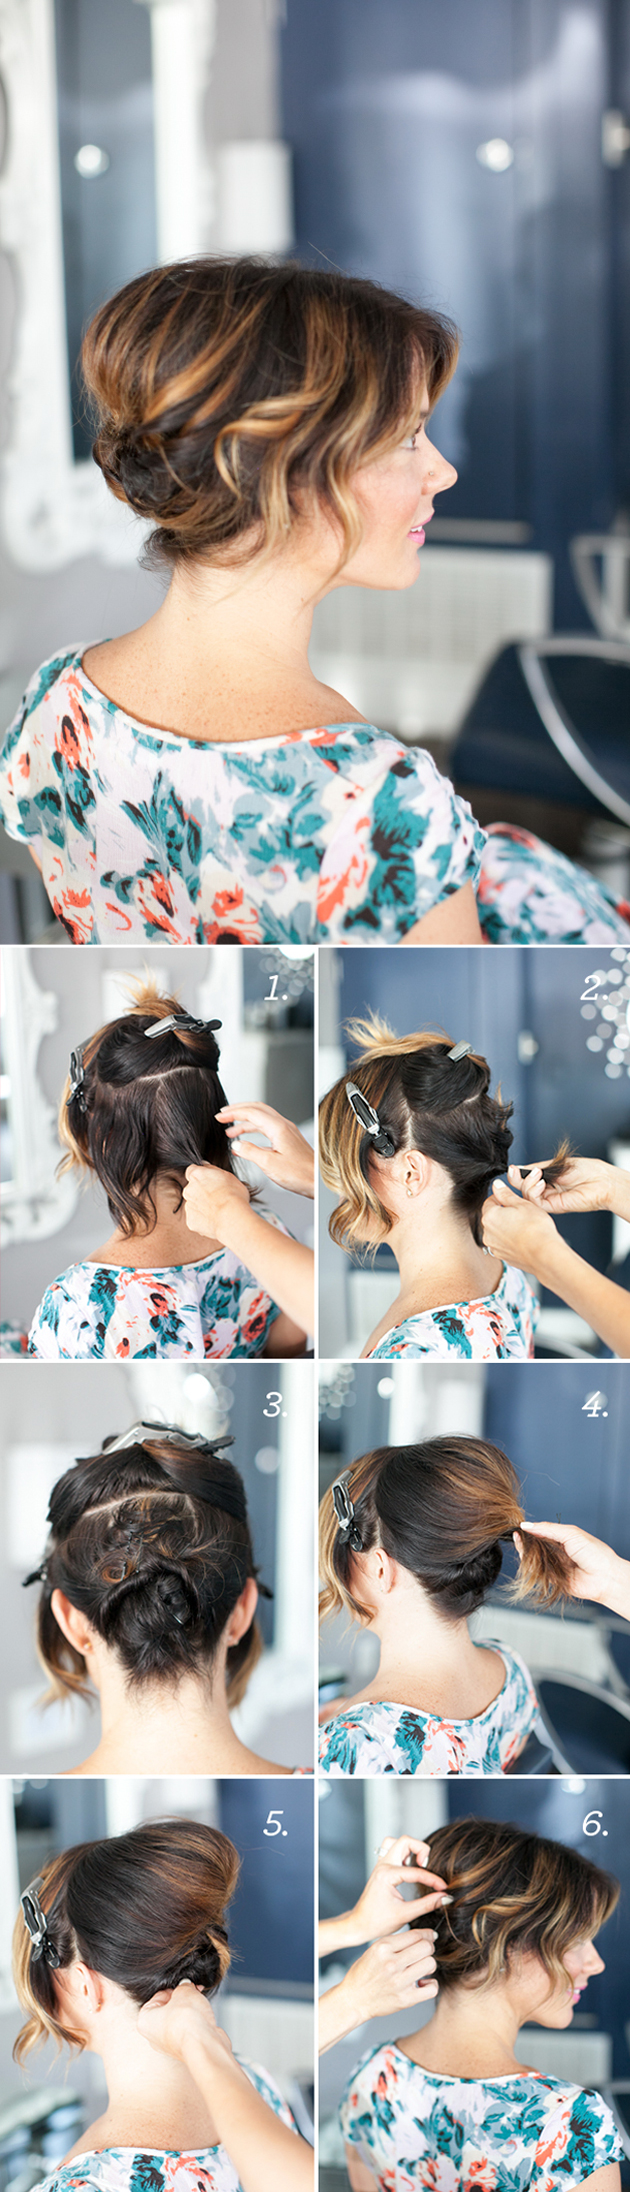 20 creative short wedding hairstyles for brides | tulle